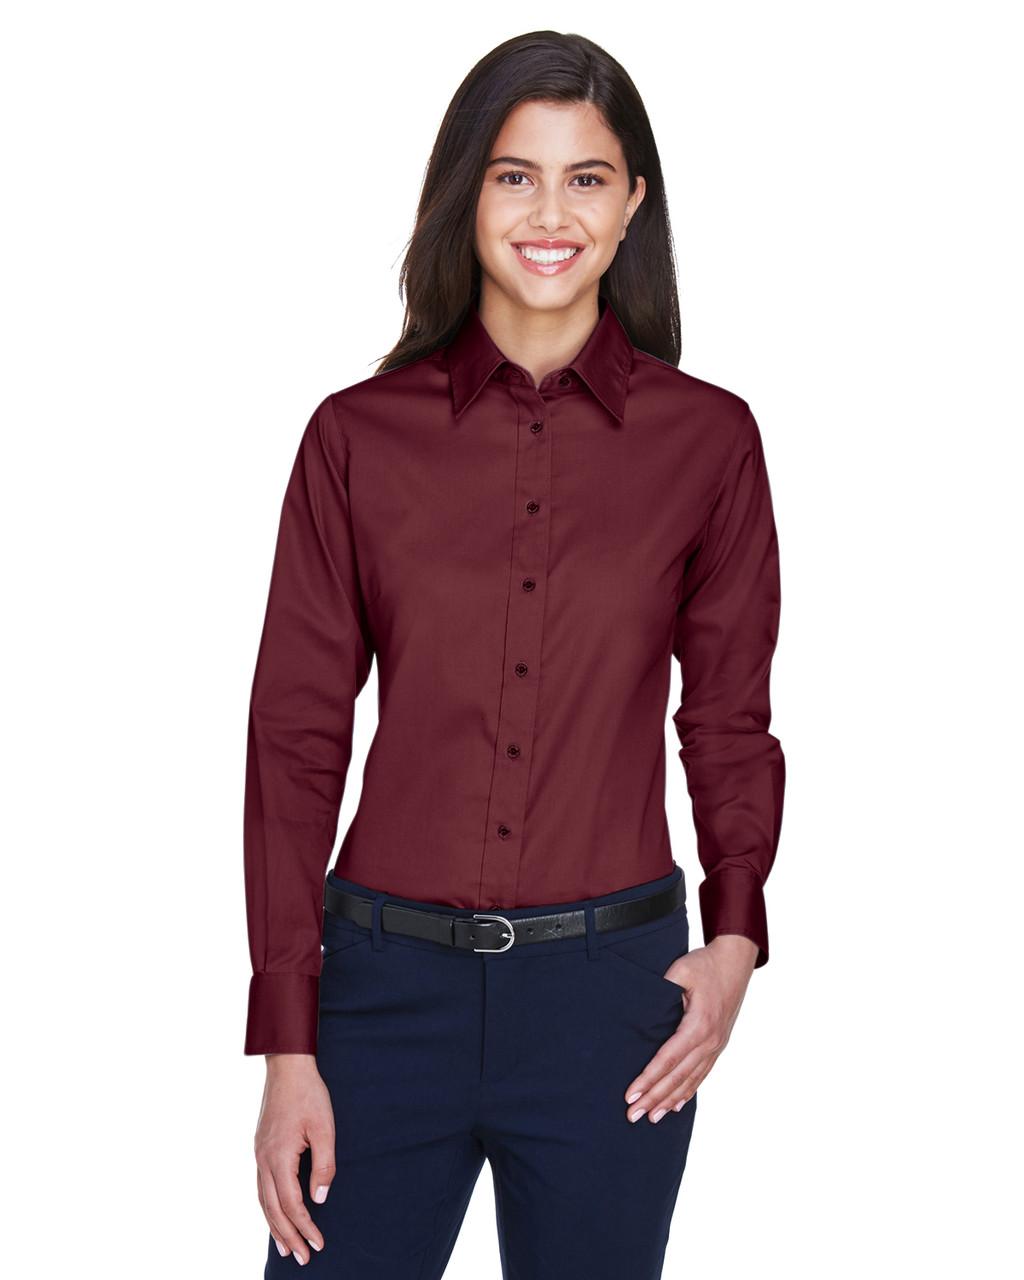 Wine - M500W Harriton Easy Blend Long-Sleeve Twill Shirt with Stain-Release | BlankClothing.ca